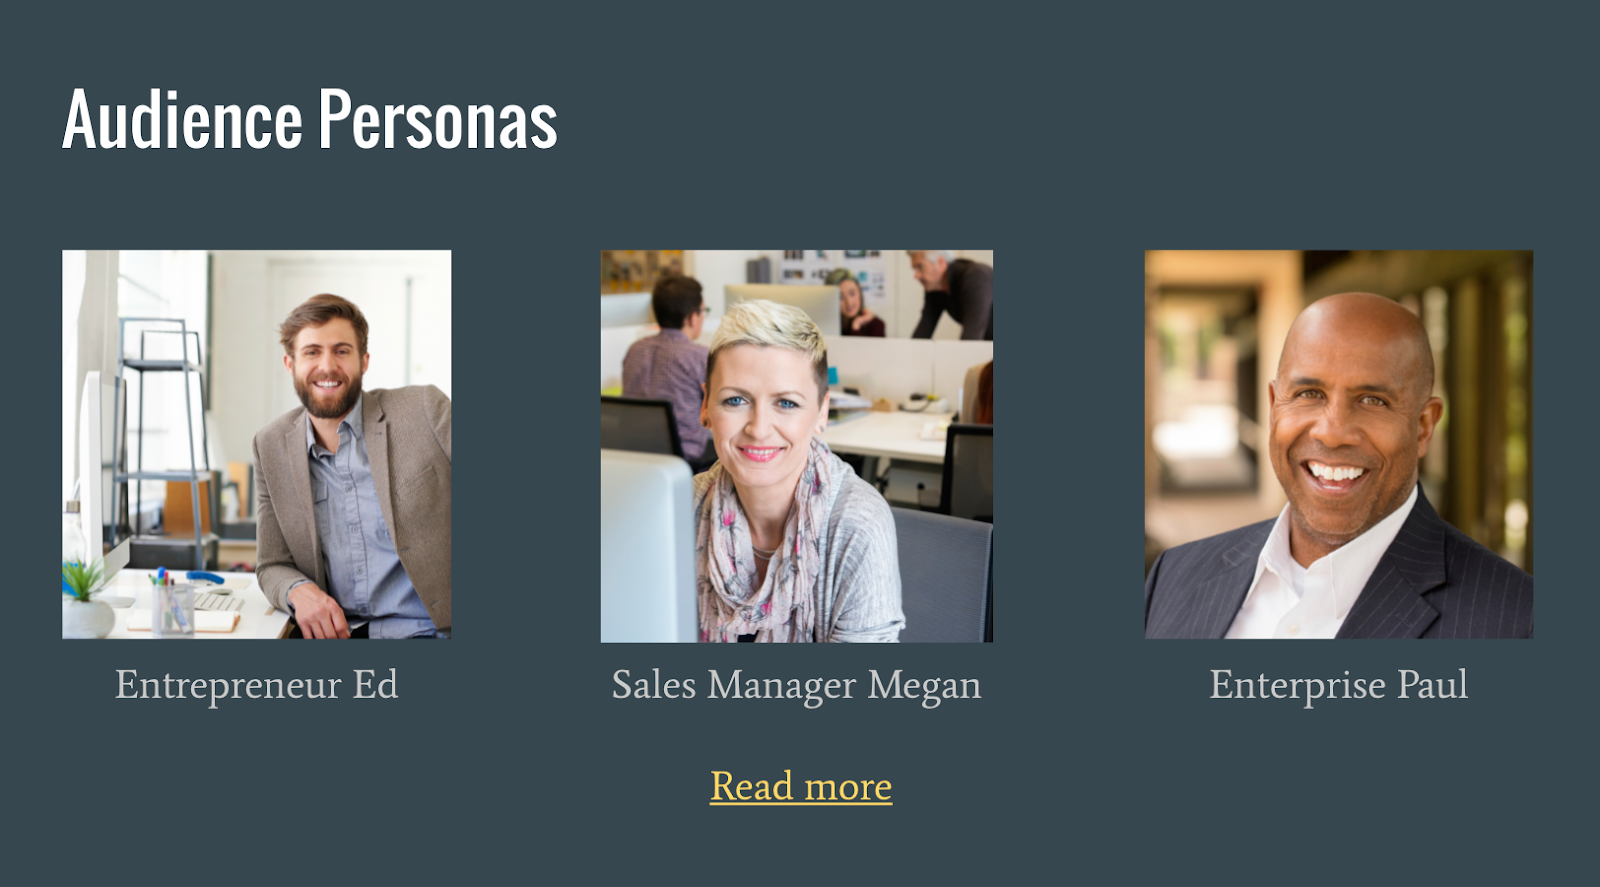 customer and audience personas in your team playbook